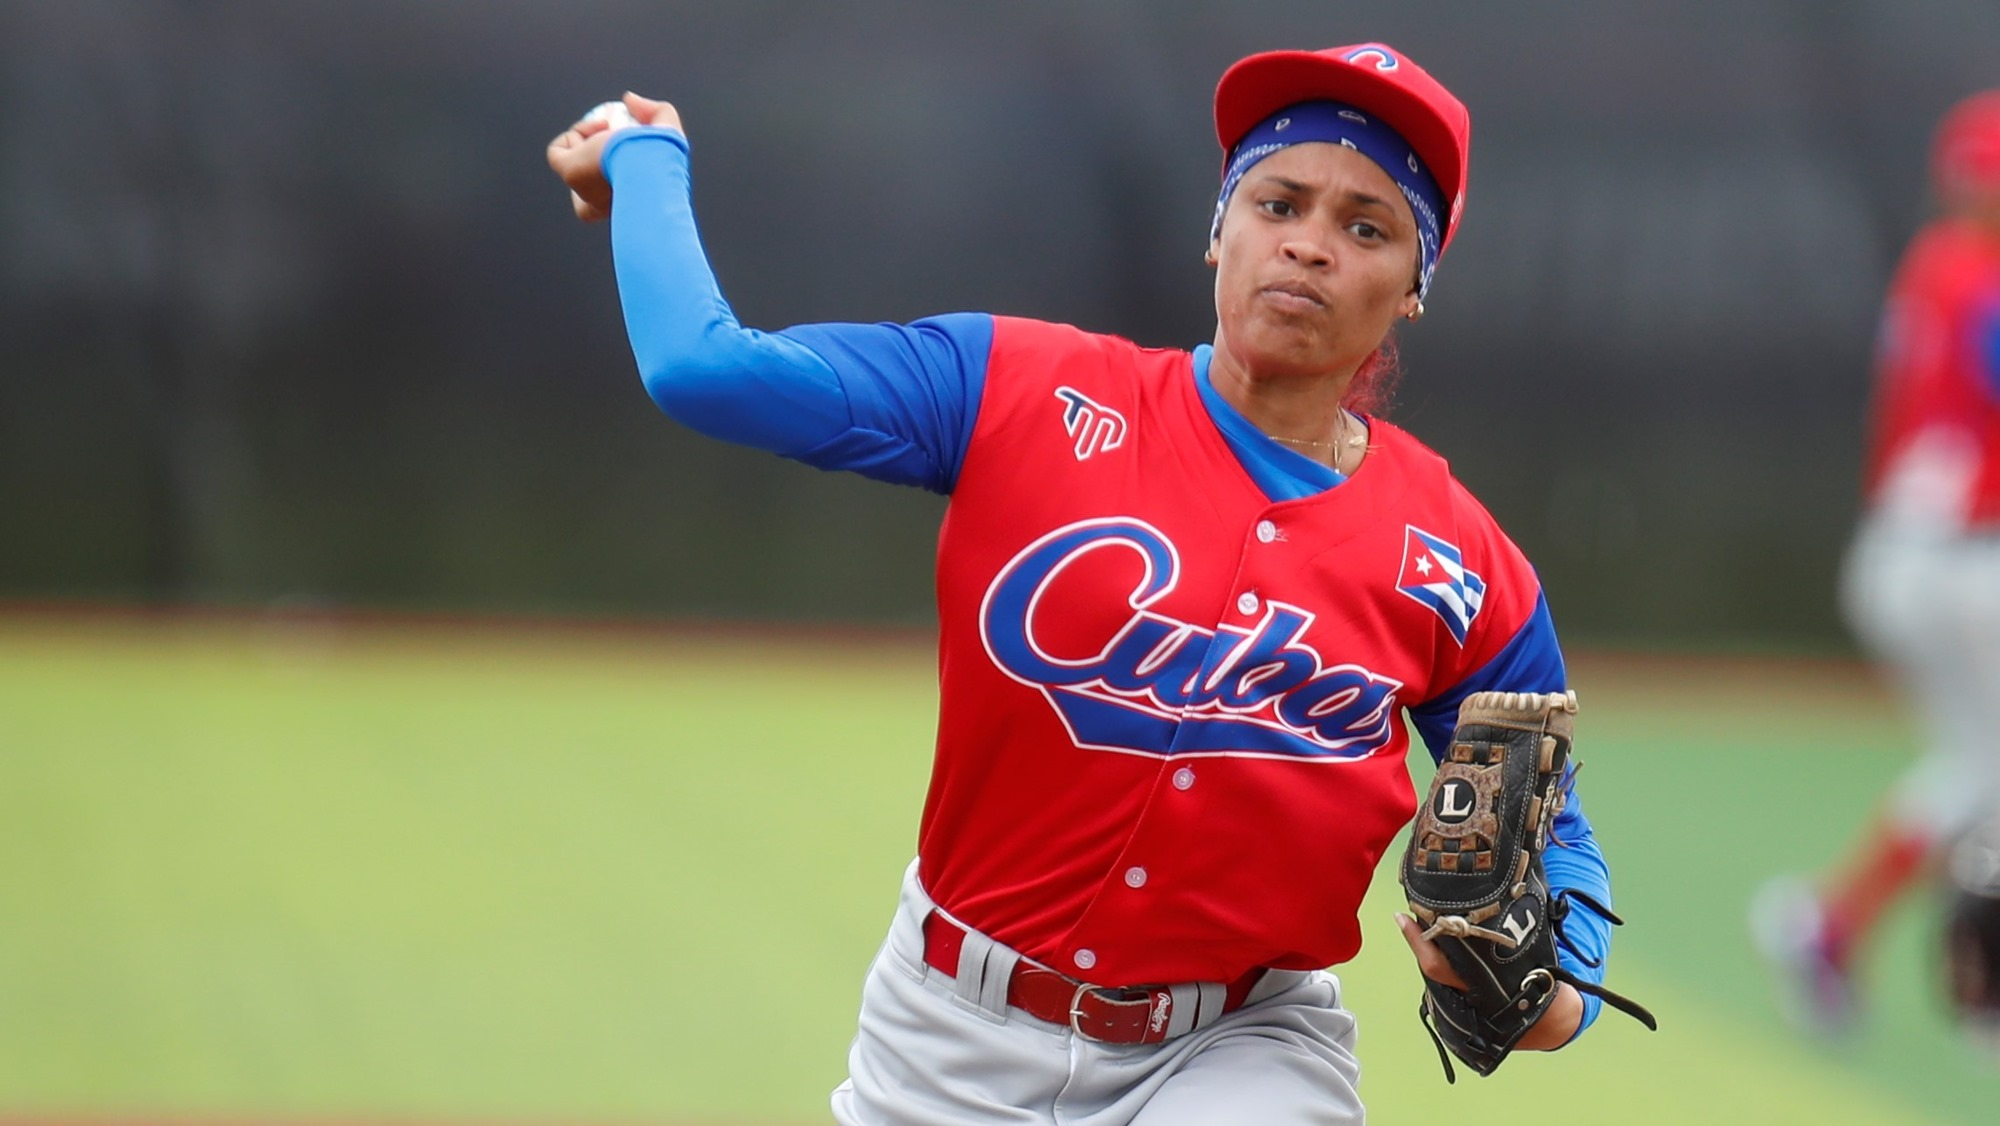 Dianelis Porro started the game against the Dominican Republic for Cuba